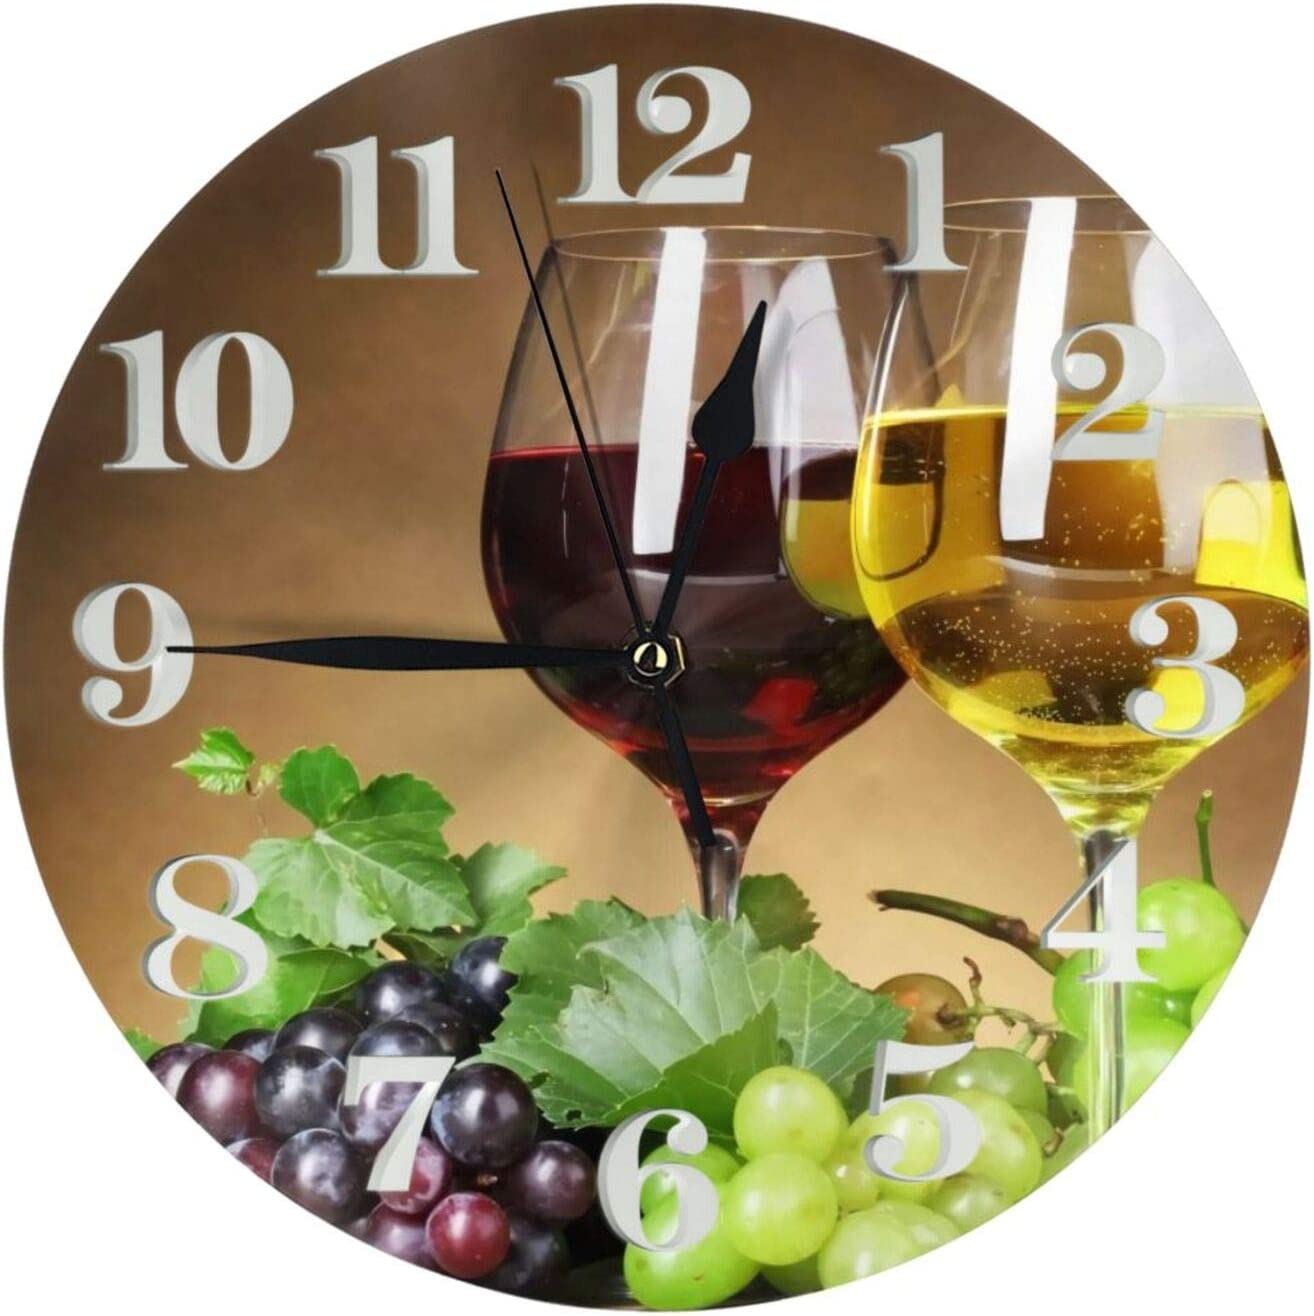 Red Wine Grape Round Wall Clock Vintage Decorative Non-Ticking Silent Battery Operated Quartz Analog Home Decor Art Desk Clocks for Living Room Bedroom Office School Kitchen 9.84 Inch